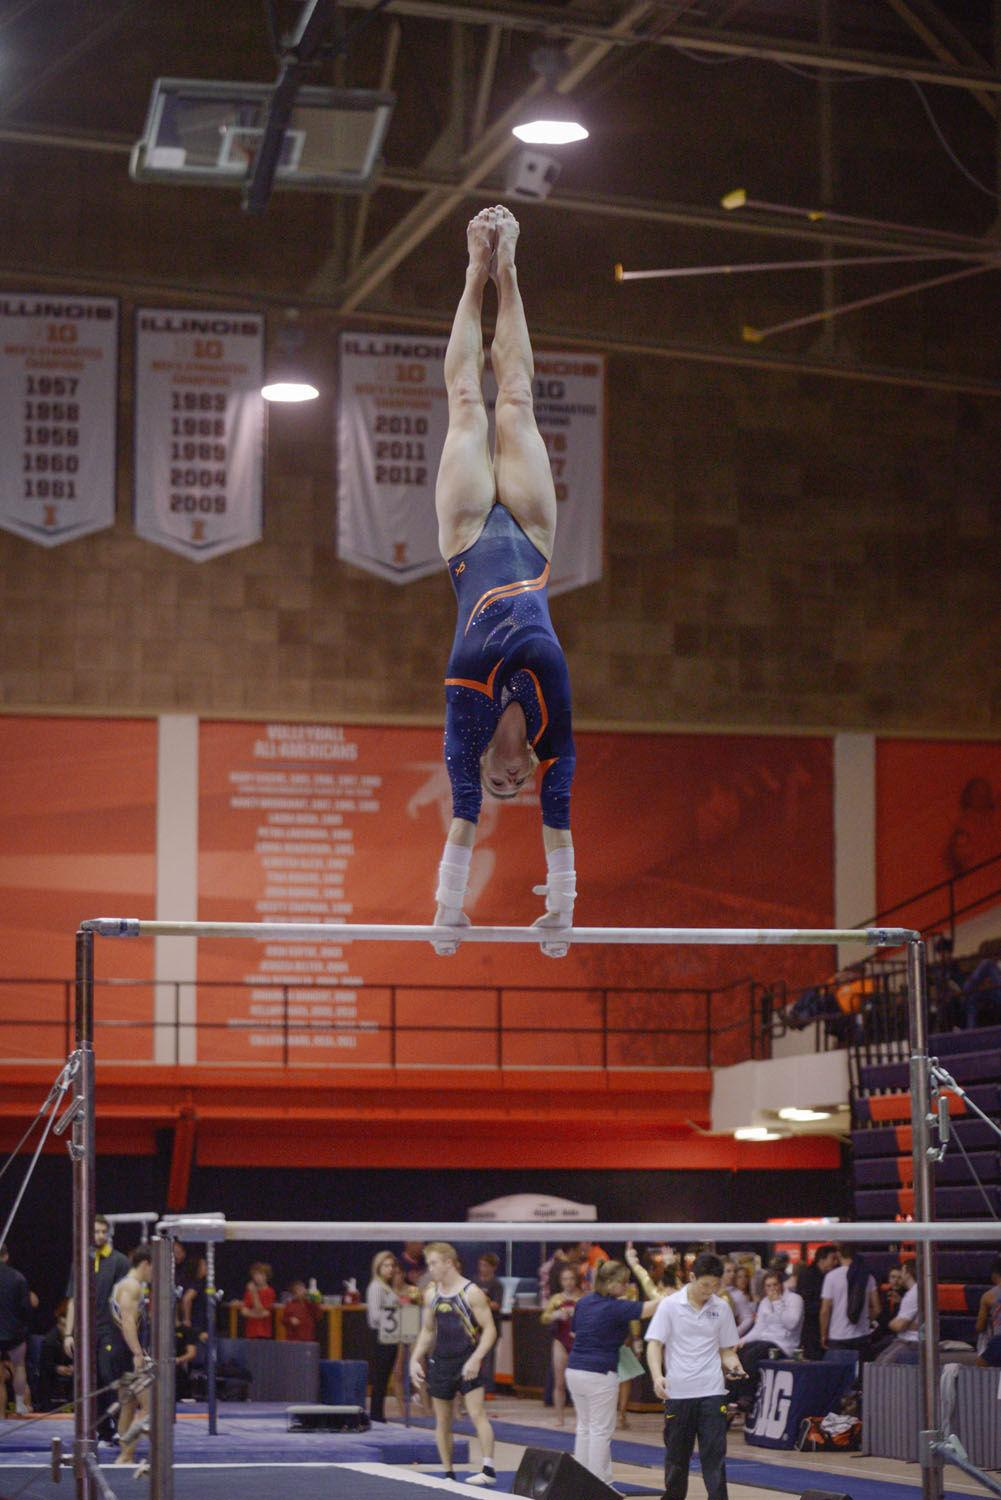 Illinois' Mary Jane Horth performs a routine on the uneven parallel bars during the meet against Minnesota on Saturday.